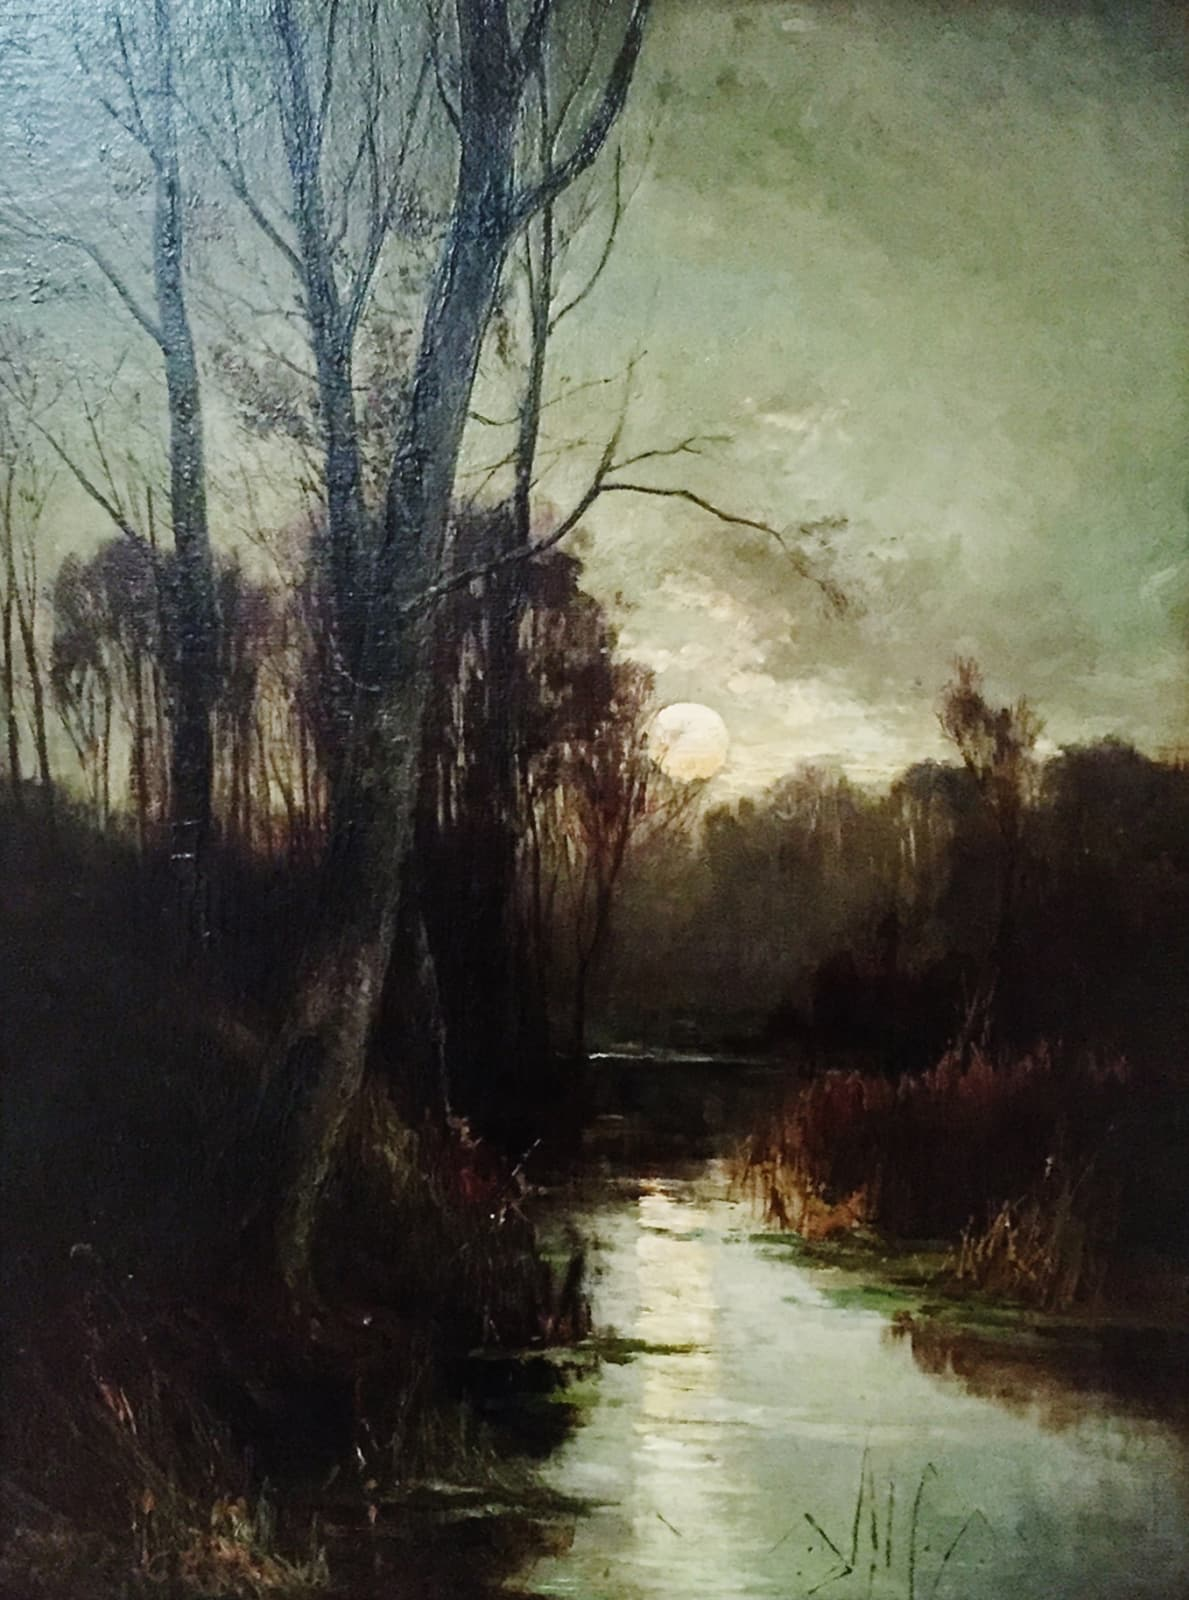 Charles Ethan Porter, Landscape (Trees with Lit Stream), 1879.0